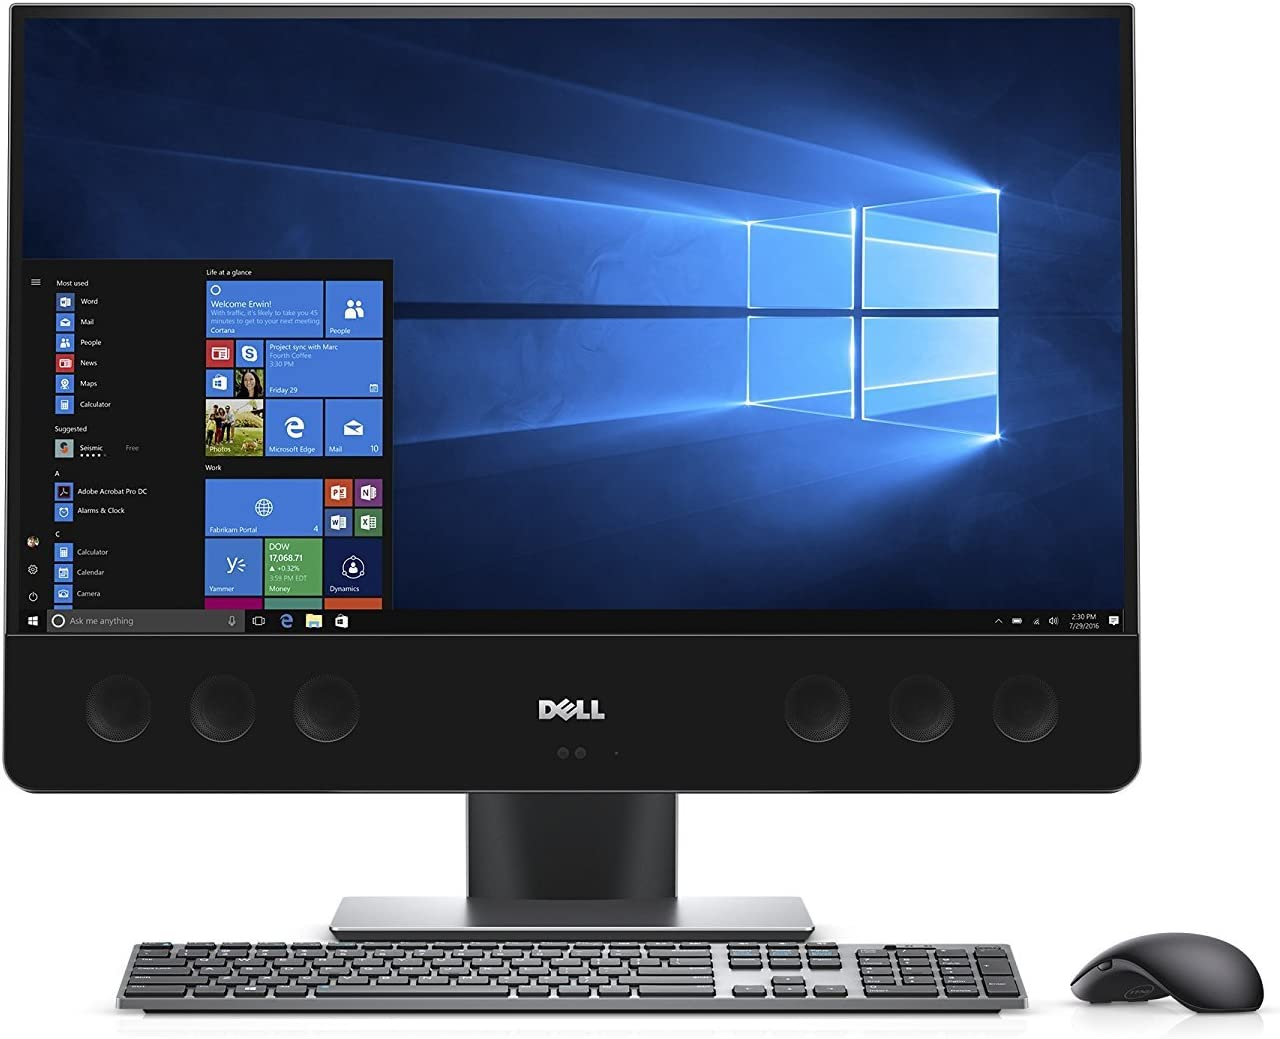 2018 Premium Flagship Dell XPS 27 All-in-One Desktop Computer (UltraSharp 4K UHD Touchscreen, Intel i7-7700 3.6GHz, 32GB RAM, 2TB HDD + 32GB SSD, AMD Radeon RX 570, 802.11ac, Webcam, Windows 10)